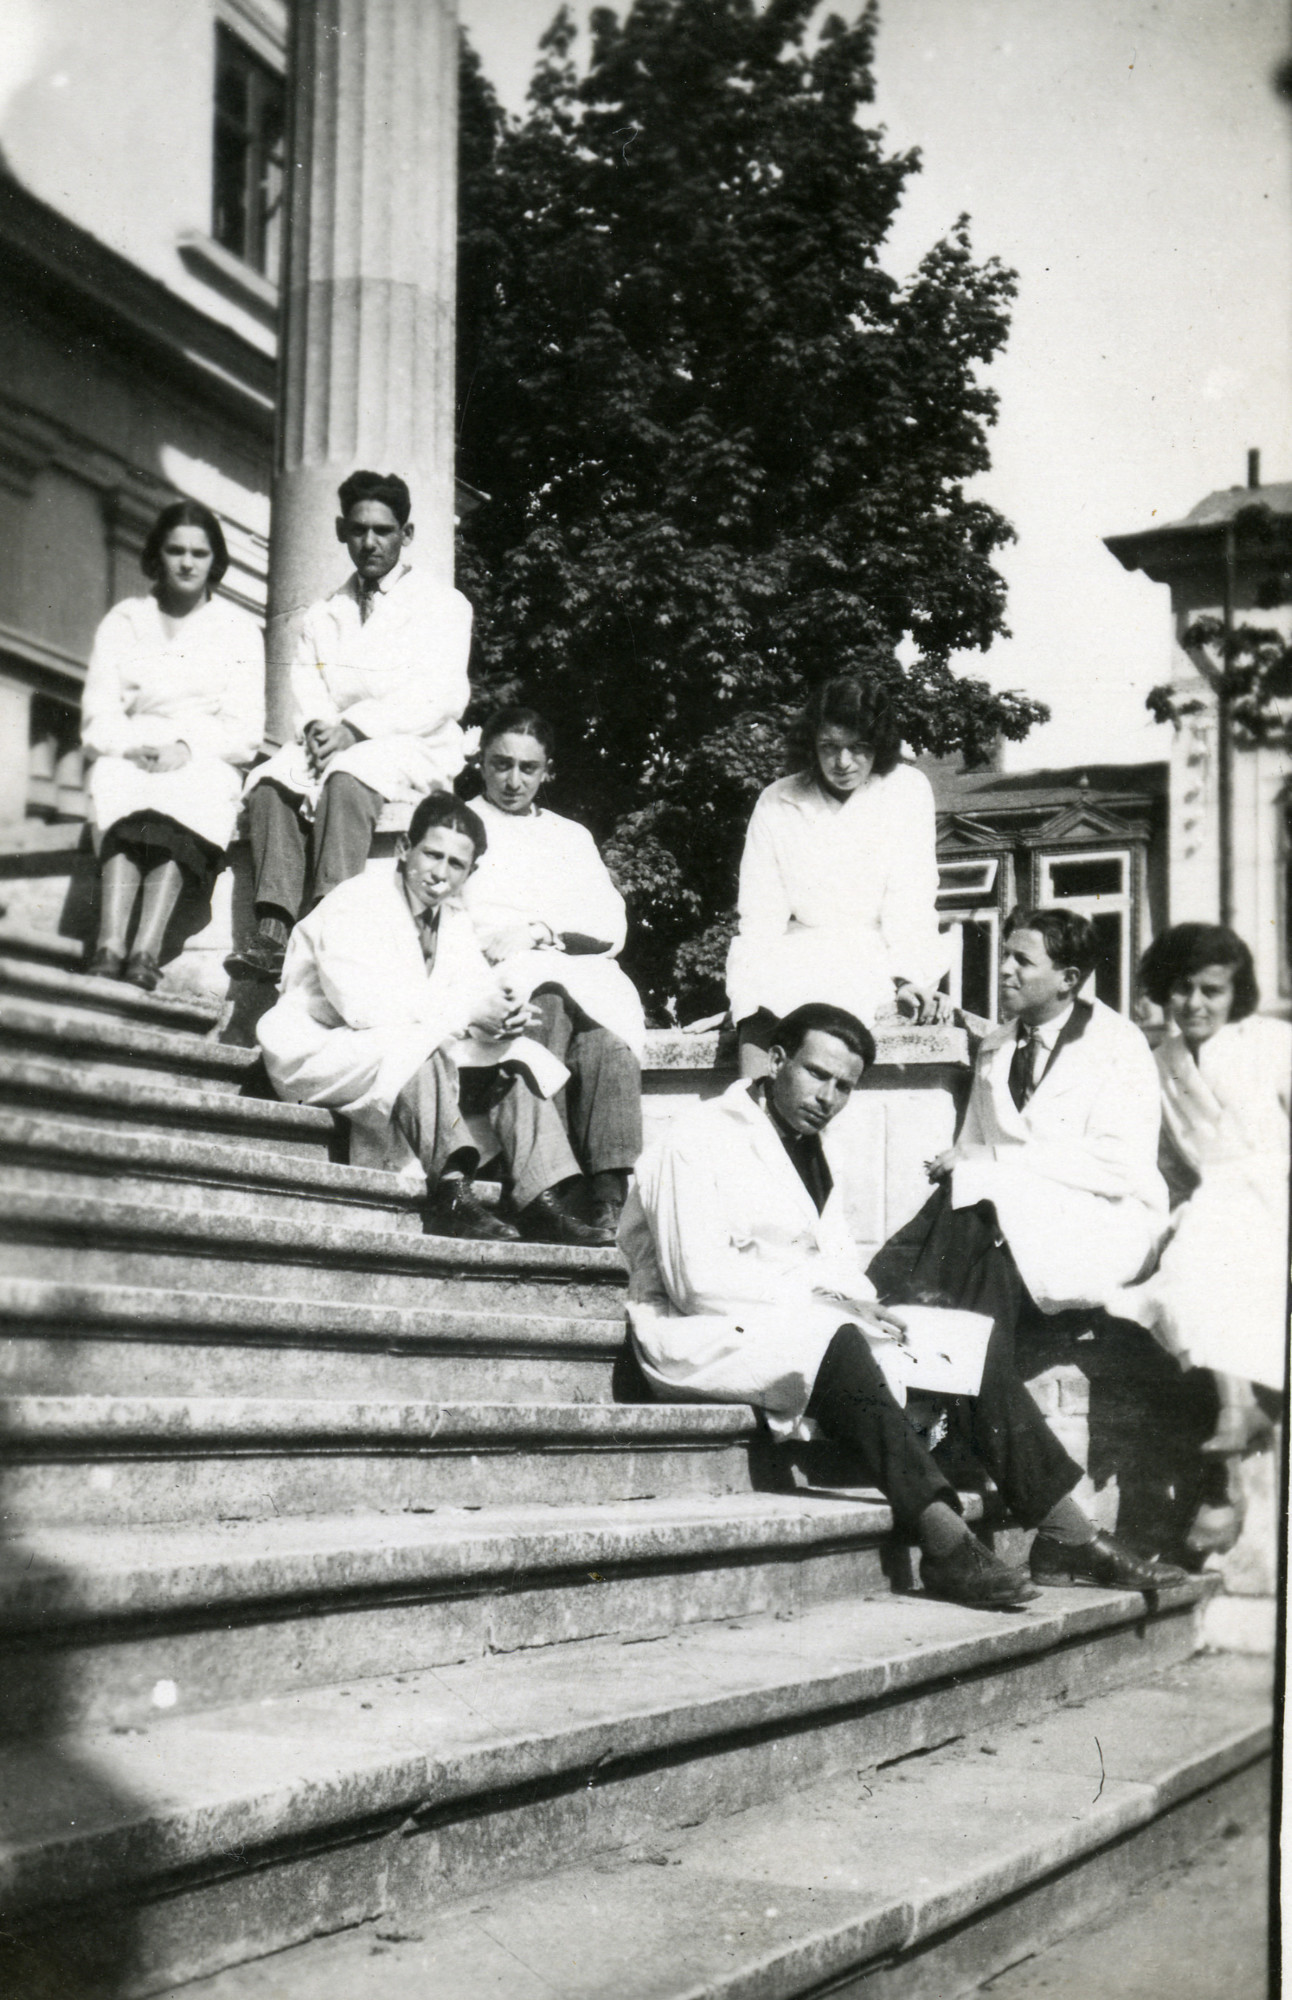 A Jewish Romanian woman poses on an outdoor stairwell with her medical school classmates.   Among those pictured is Charlotte Josef (far left).